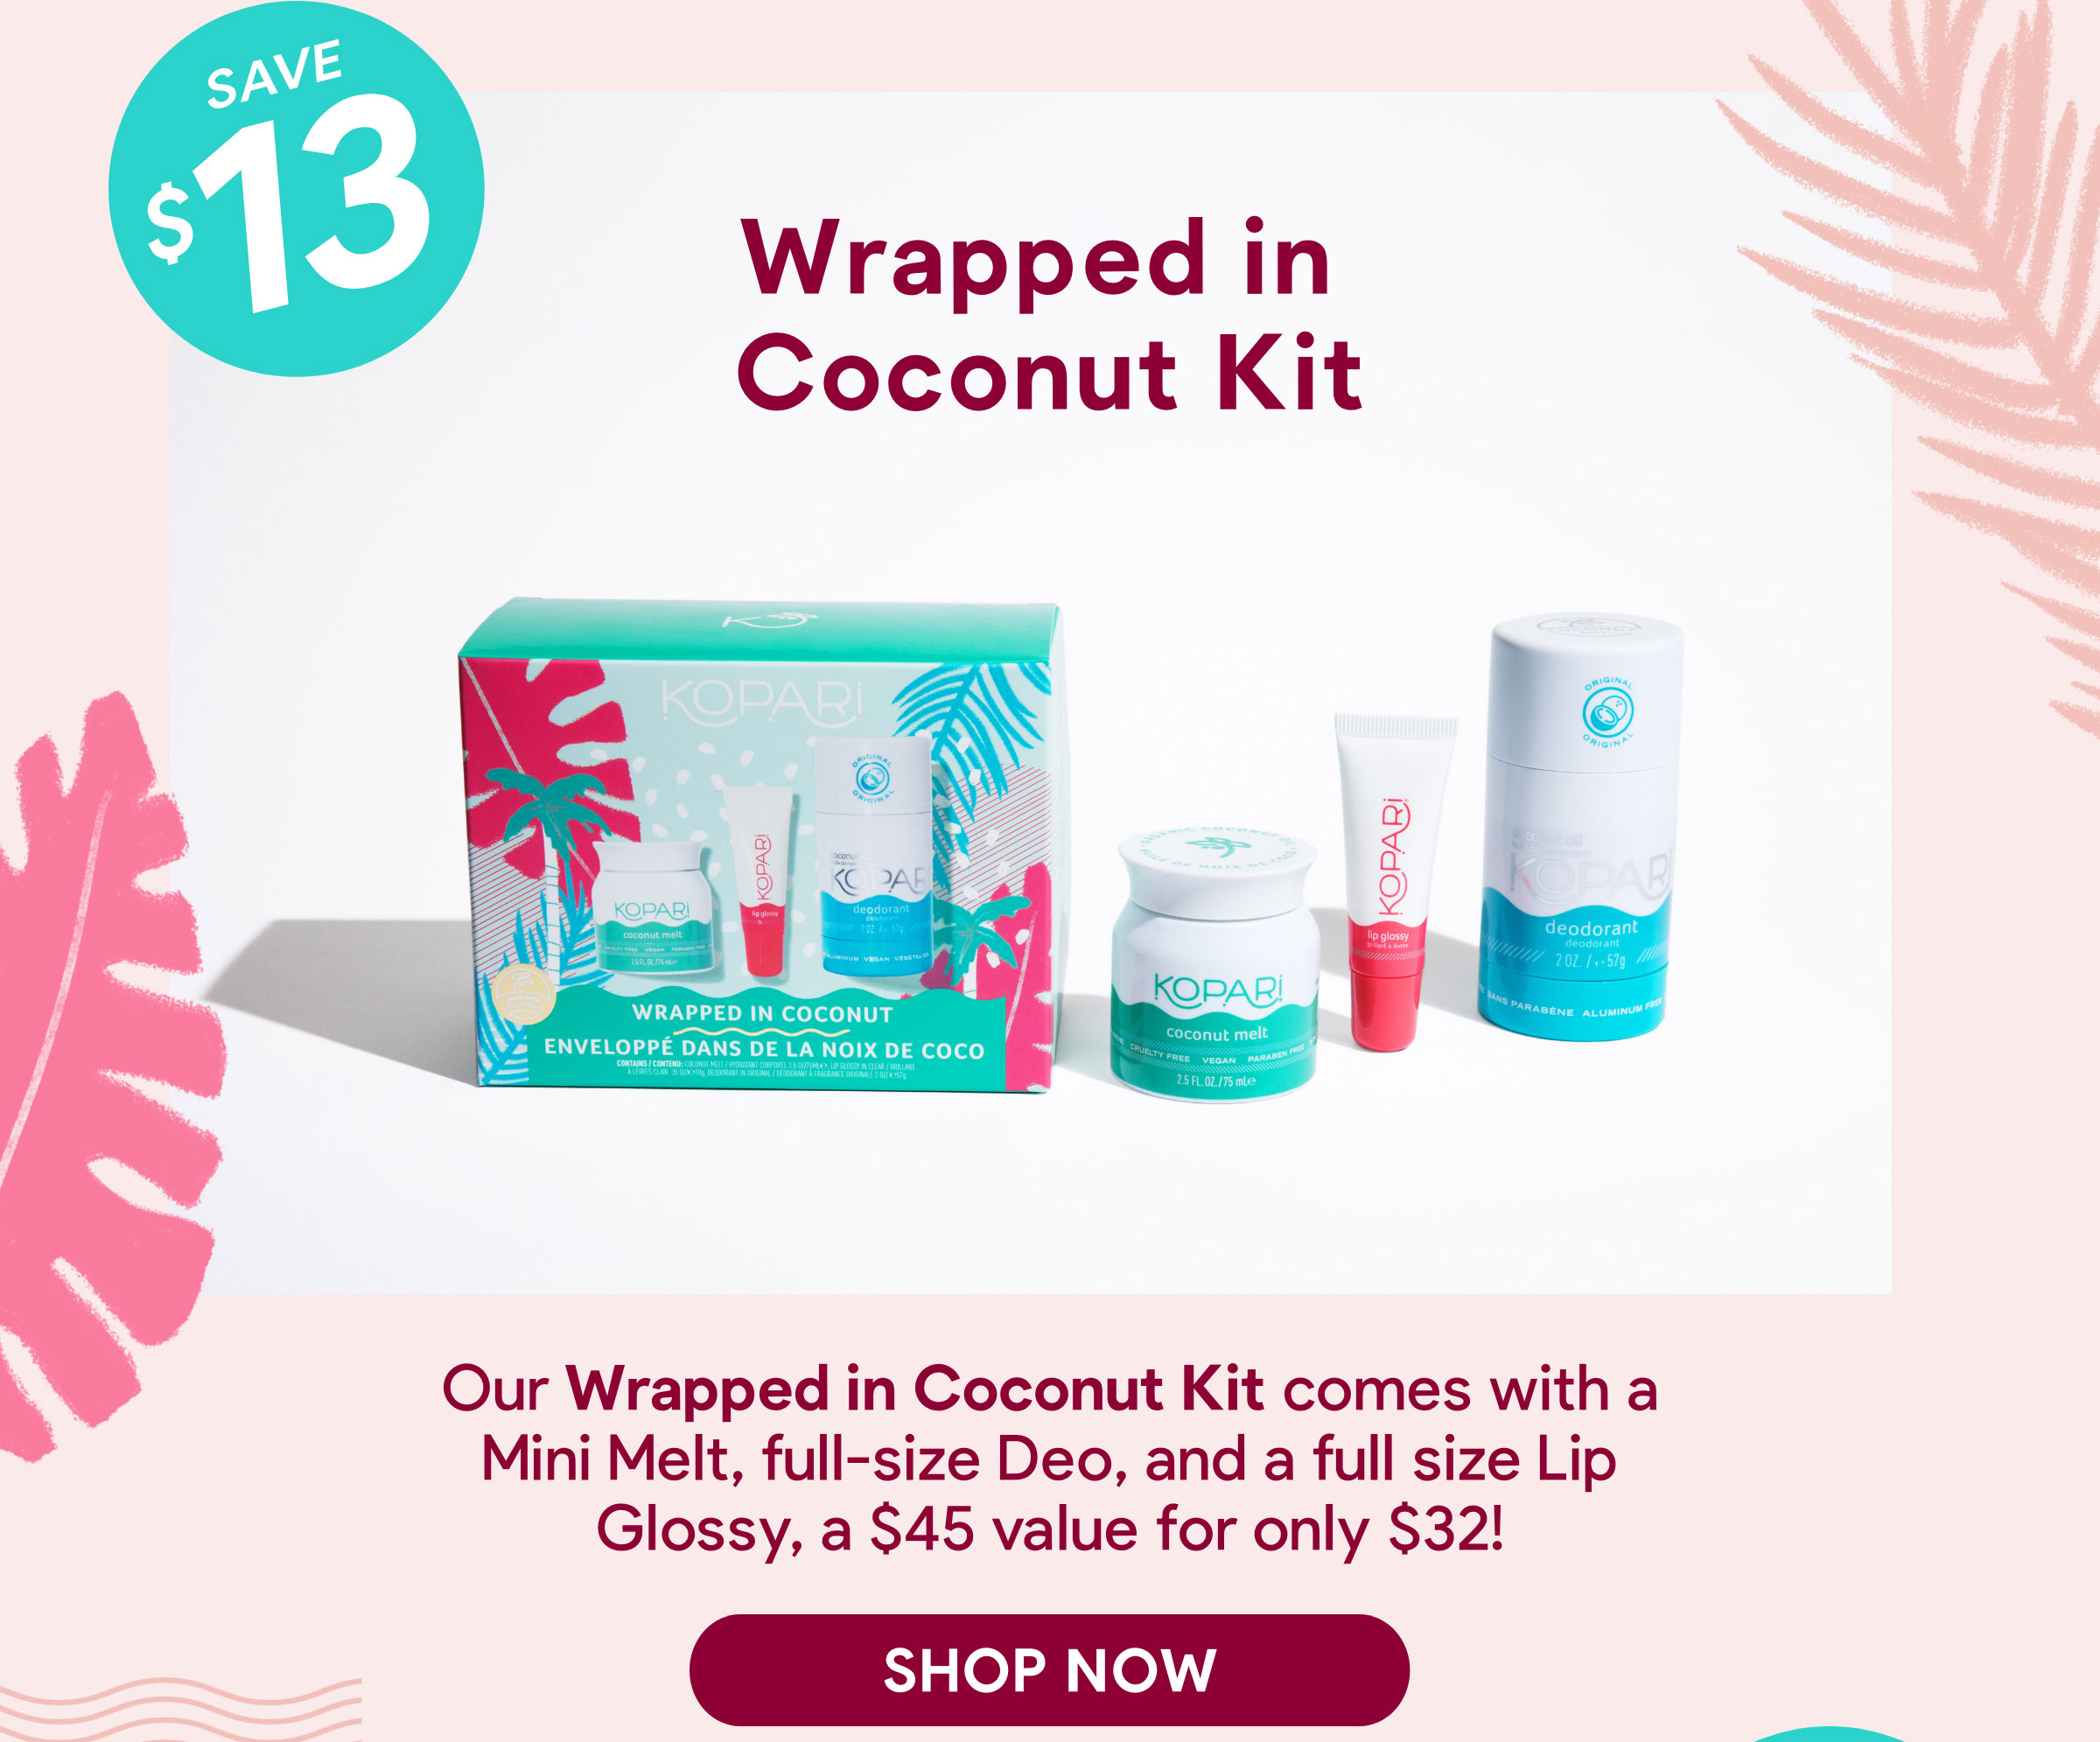 Wrapped in Coconut Kit | Our Wrapped in Coconut Kit comes with a Mini Melt, full-size Deo, and a full size Lip Glossy, a $45 value for only $32! | SHOP NOW